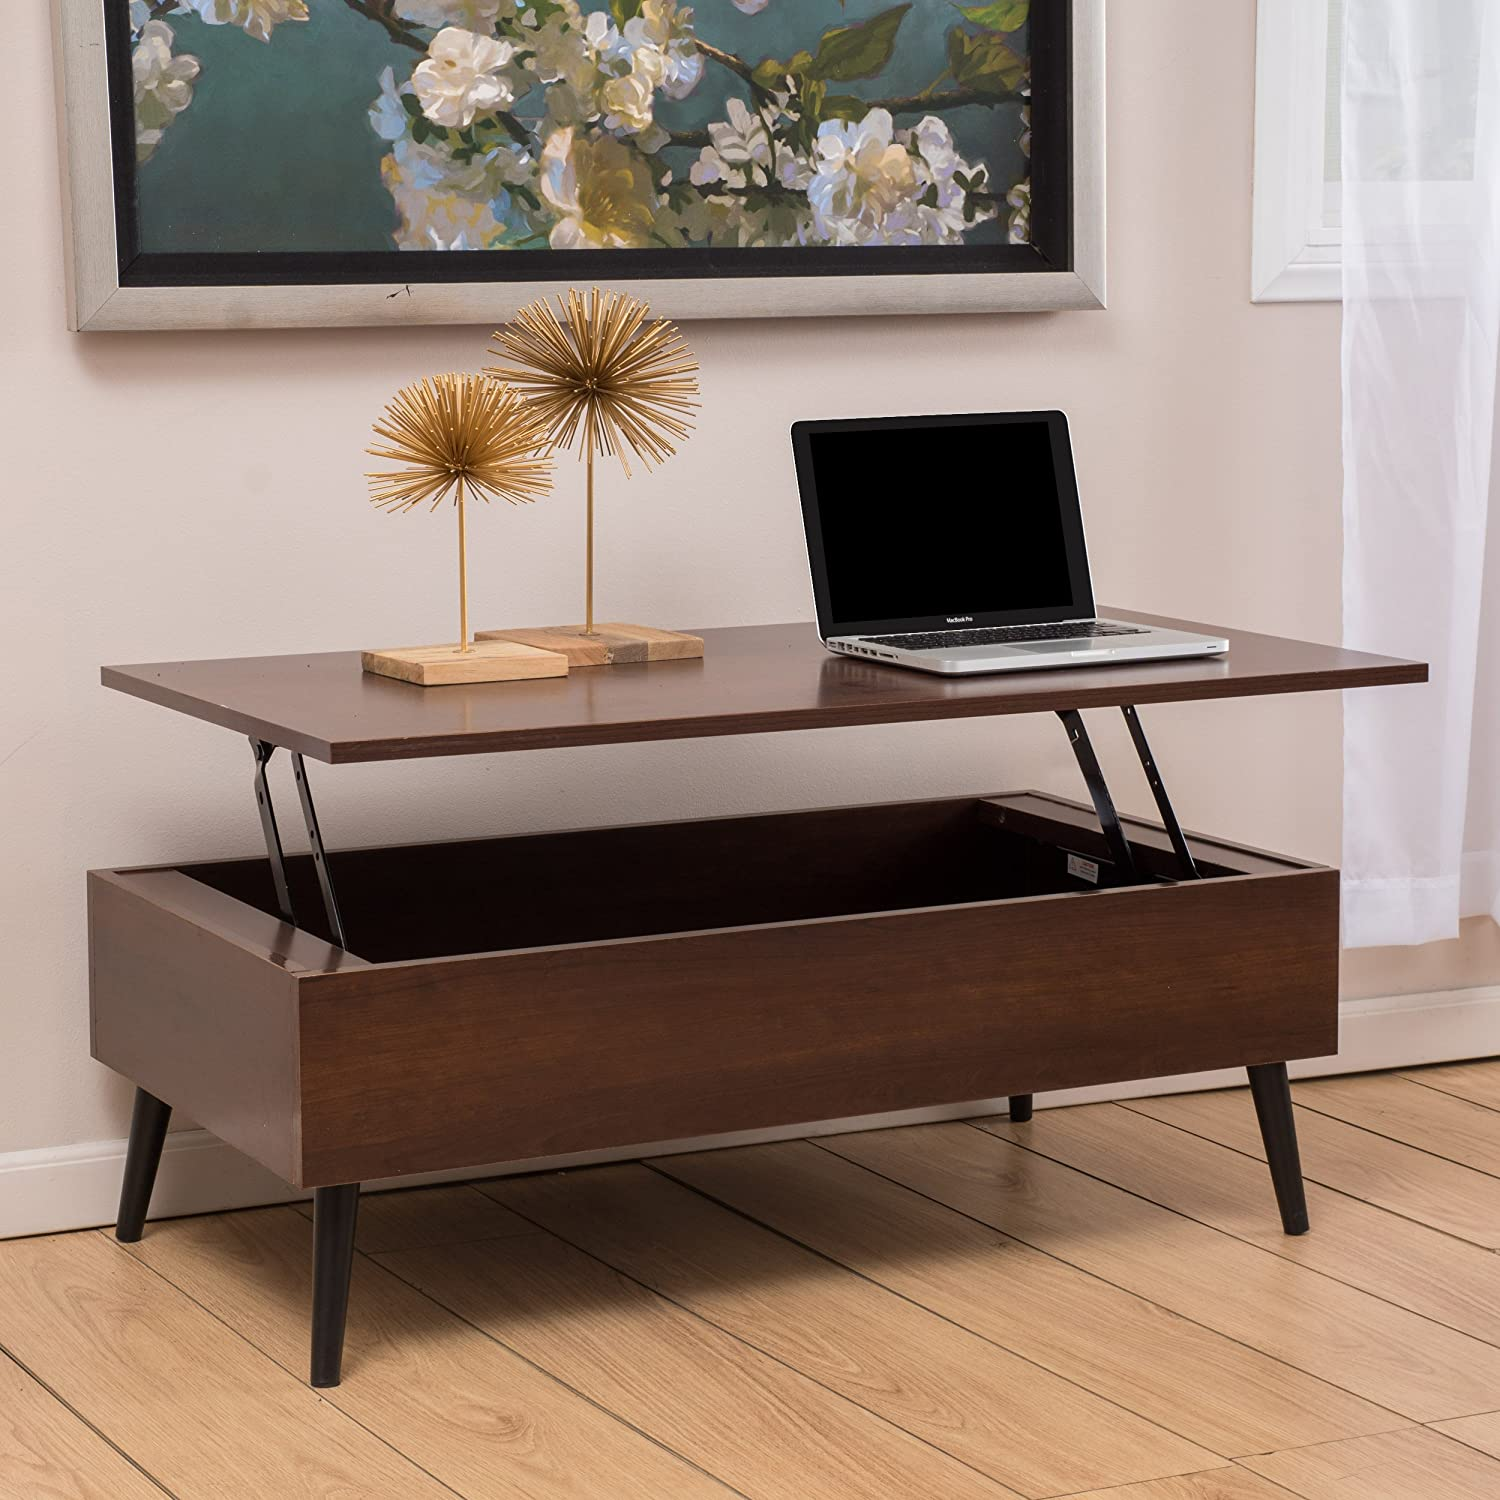 Amazon.com: Great Deal Furniture Caleb Mahogany Wood Lift Top Storage Coffee  Table: Kitchen U0026 Dining